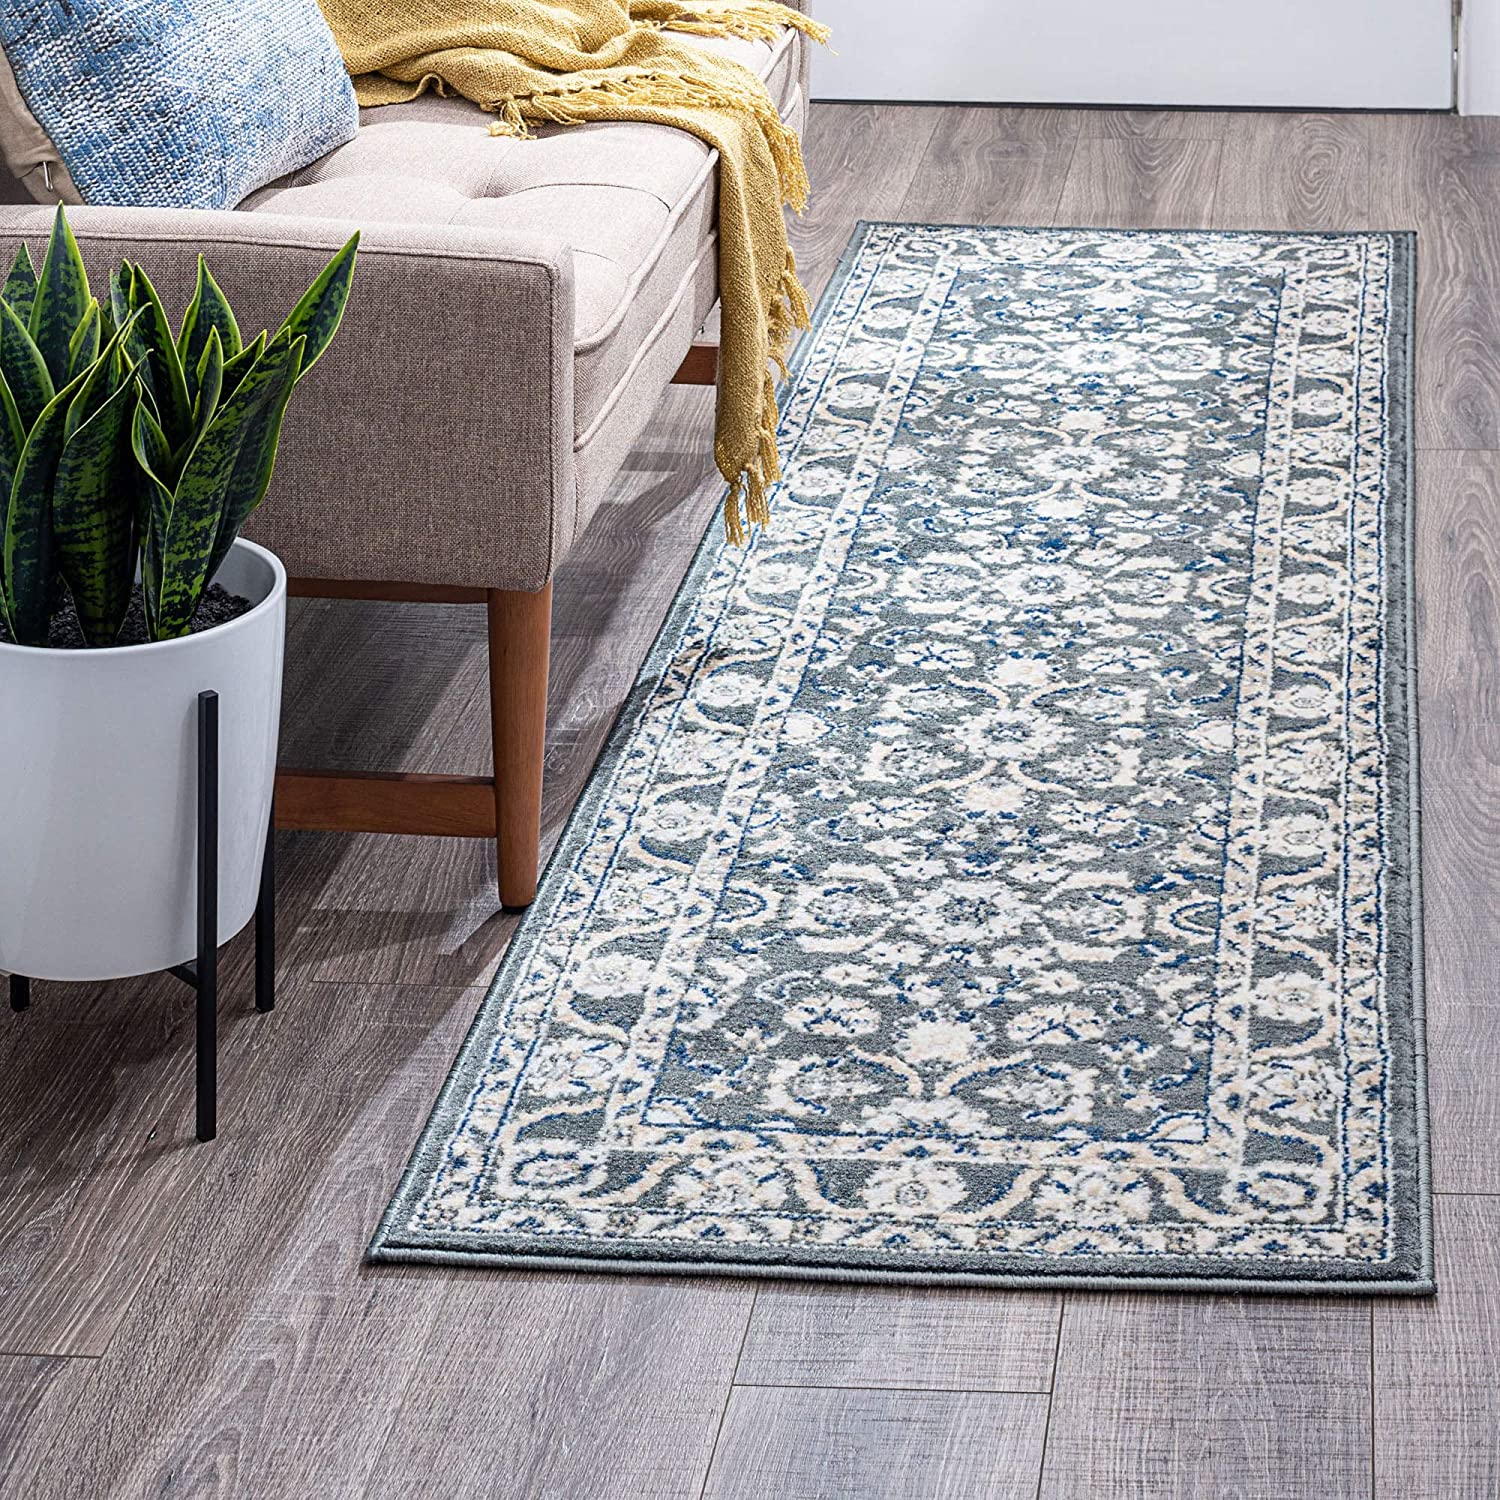 Amazon Com Shiloh Gray 2x8 Runner Area Rug For Hallway Walkway Entryway Or Foyer Traditional Floral Kitchen Dining